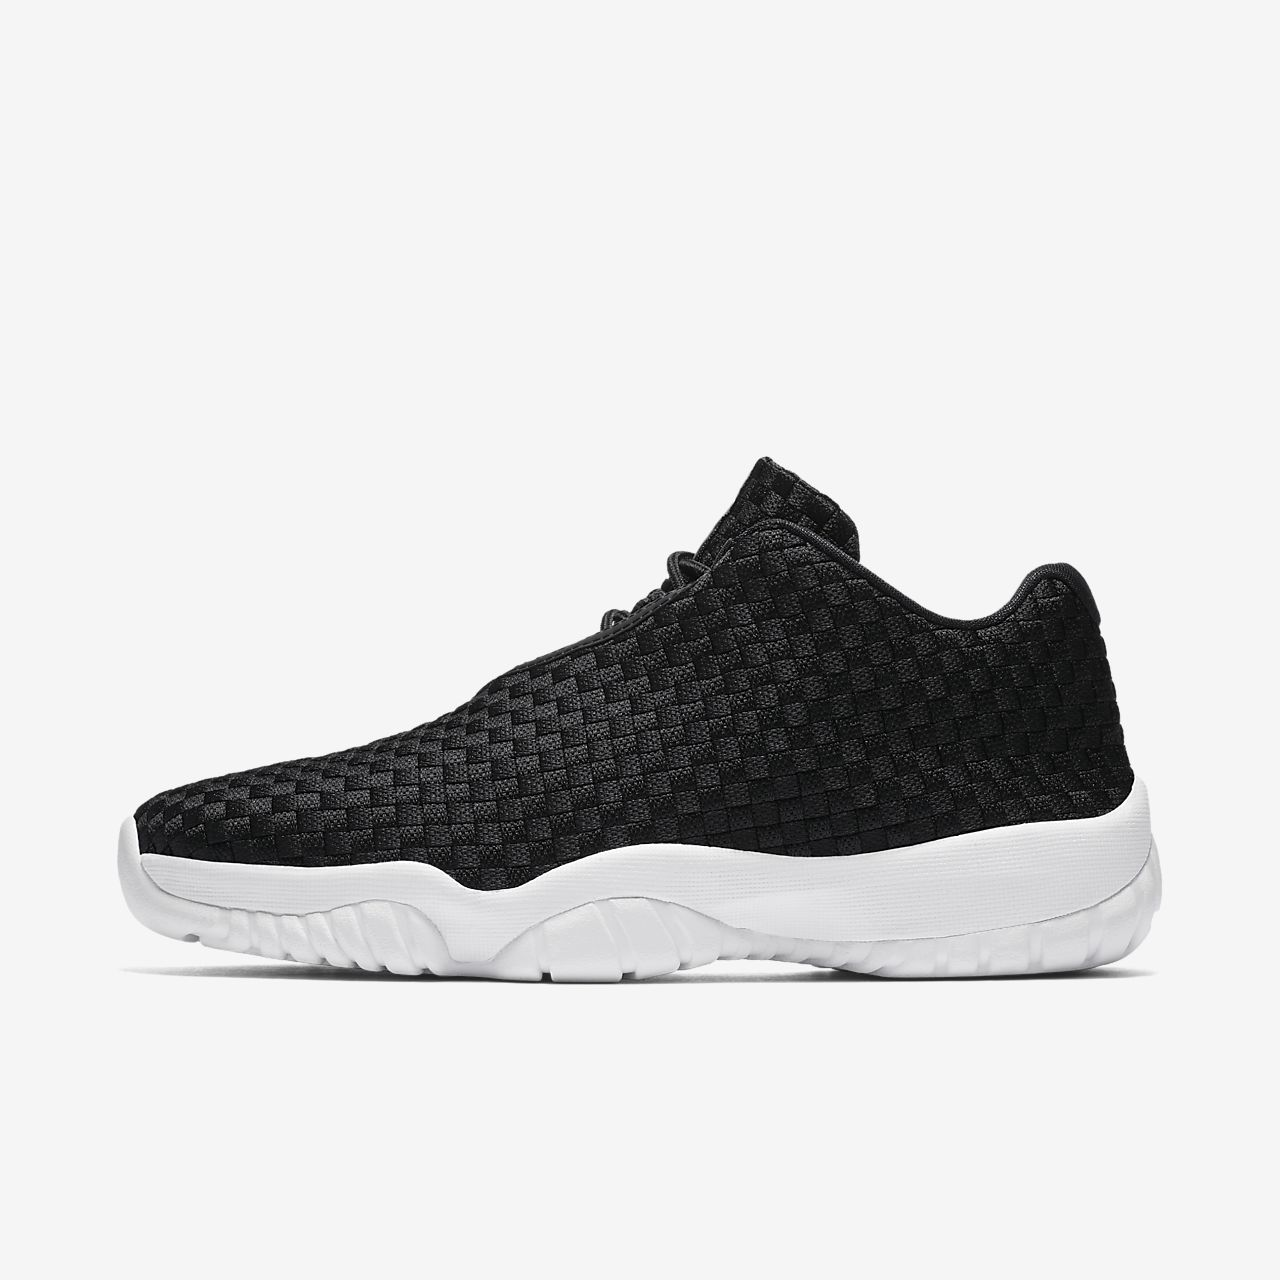 jordan mens tennis shoes nz